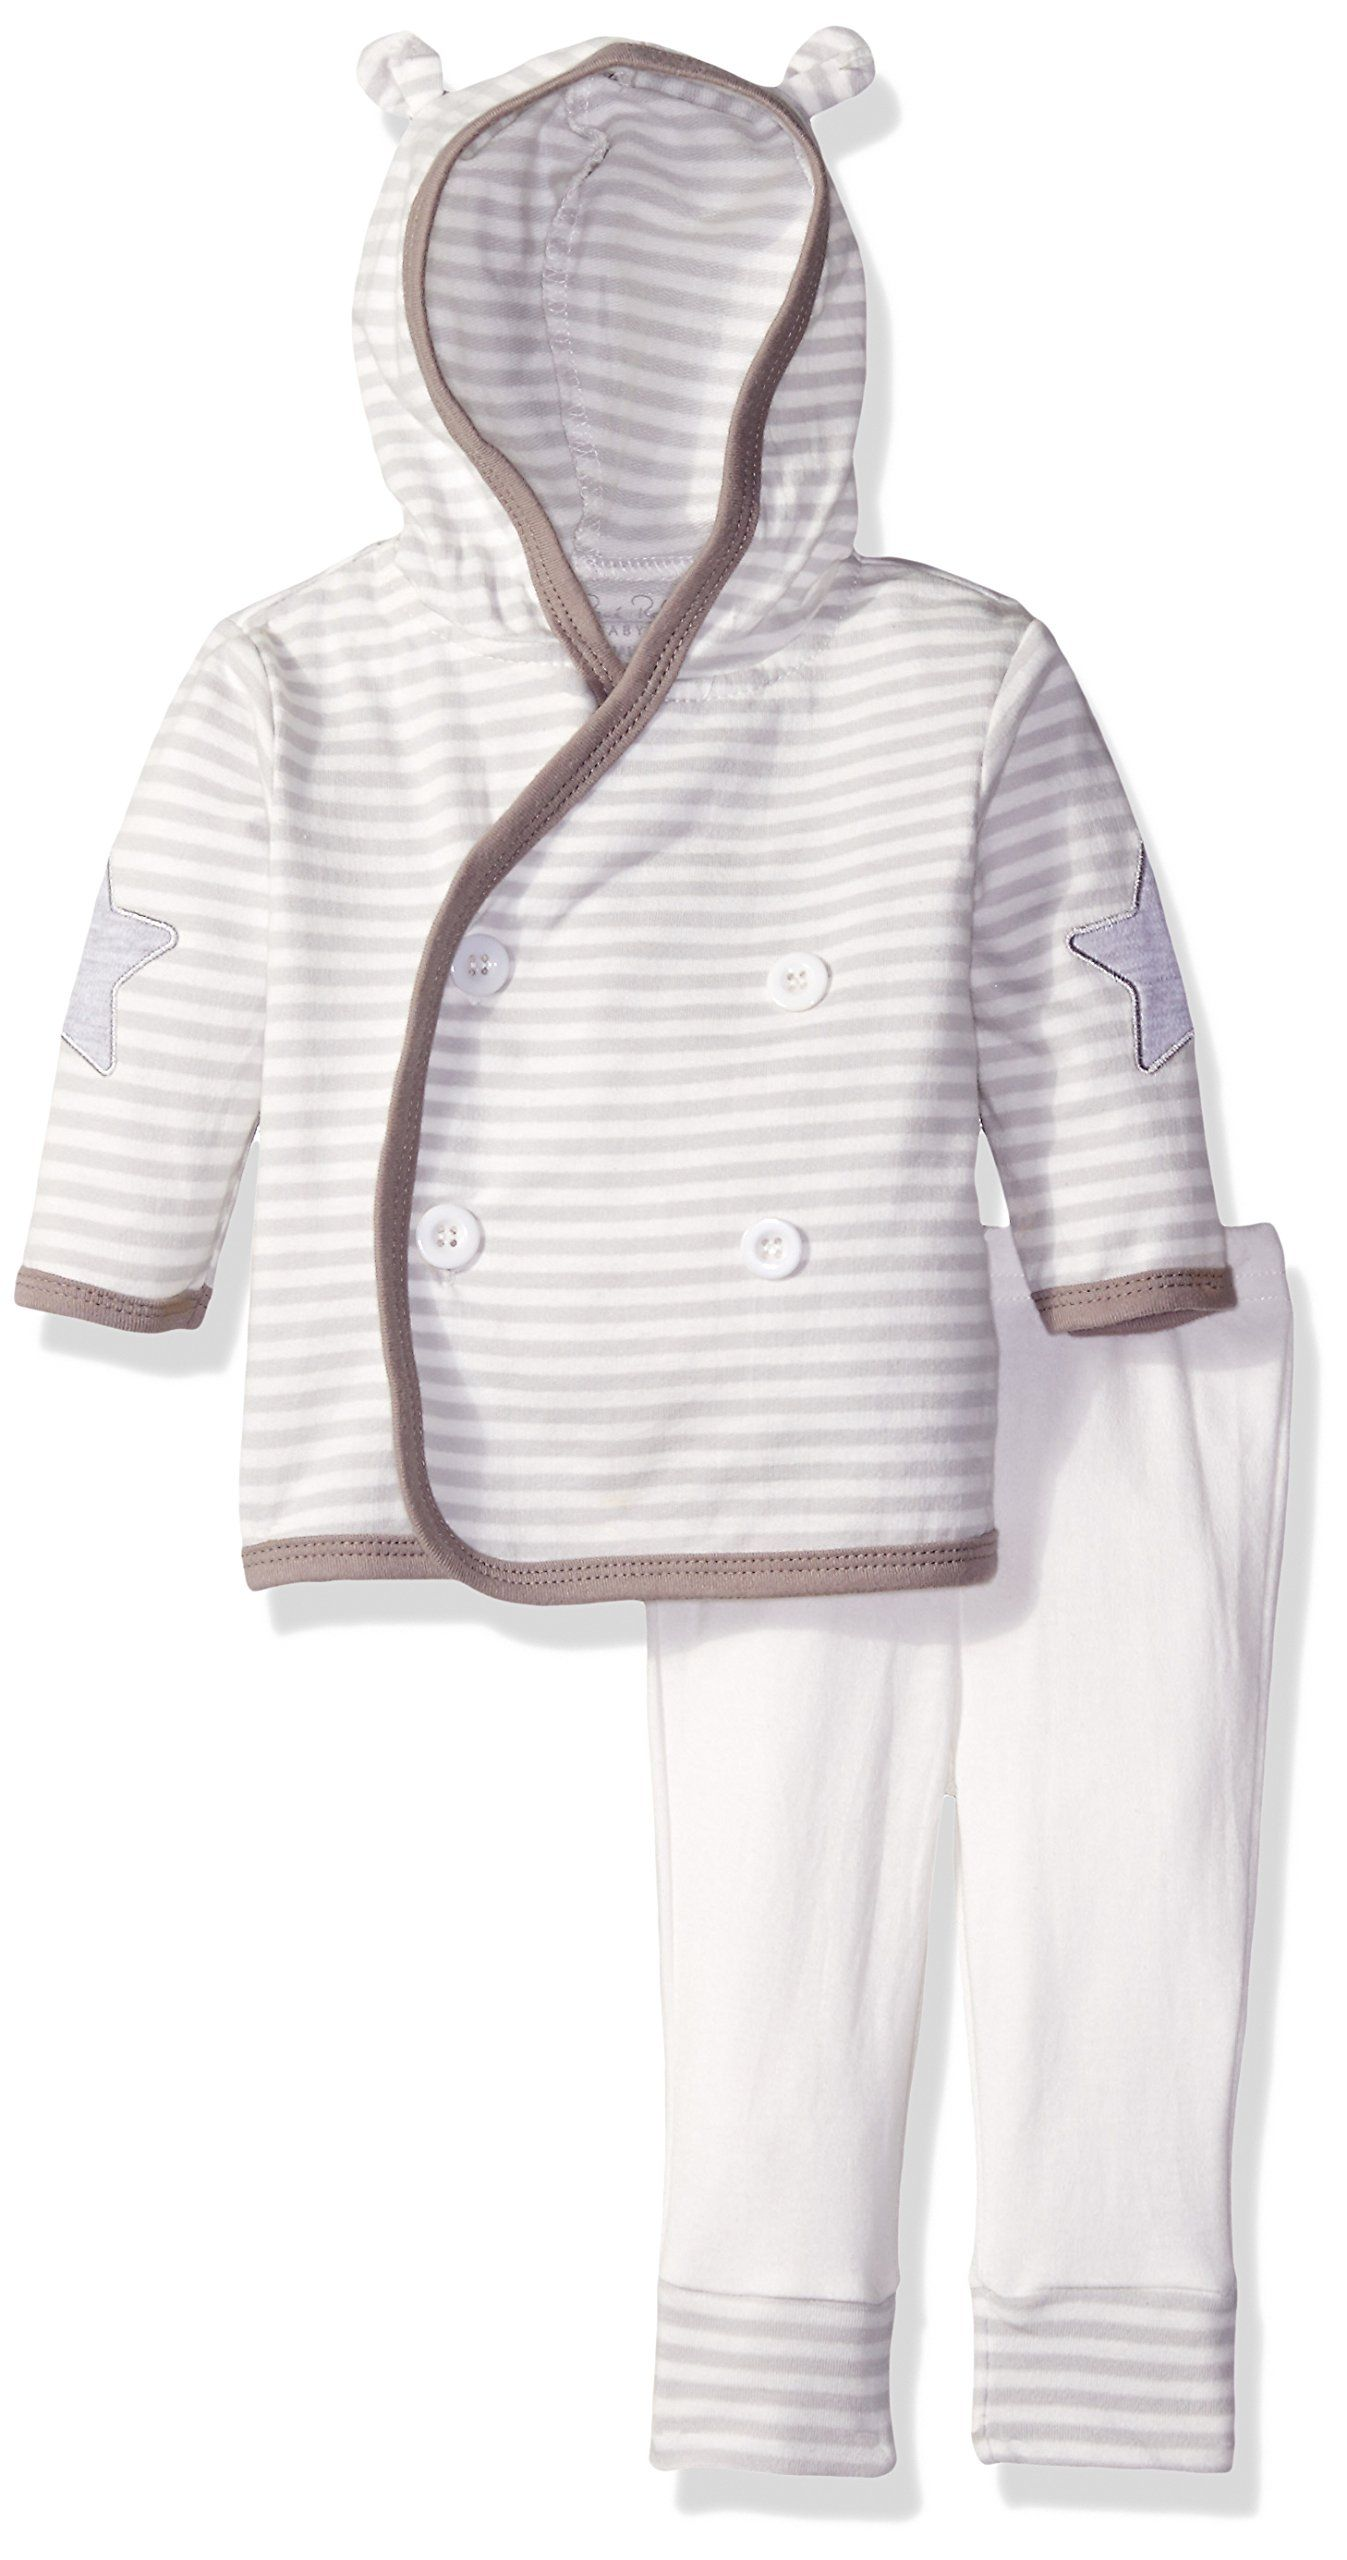 Rene Rofe Baby Dreams 2 Piece Hooded Cardigan and Pant Set Sweet